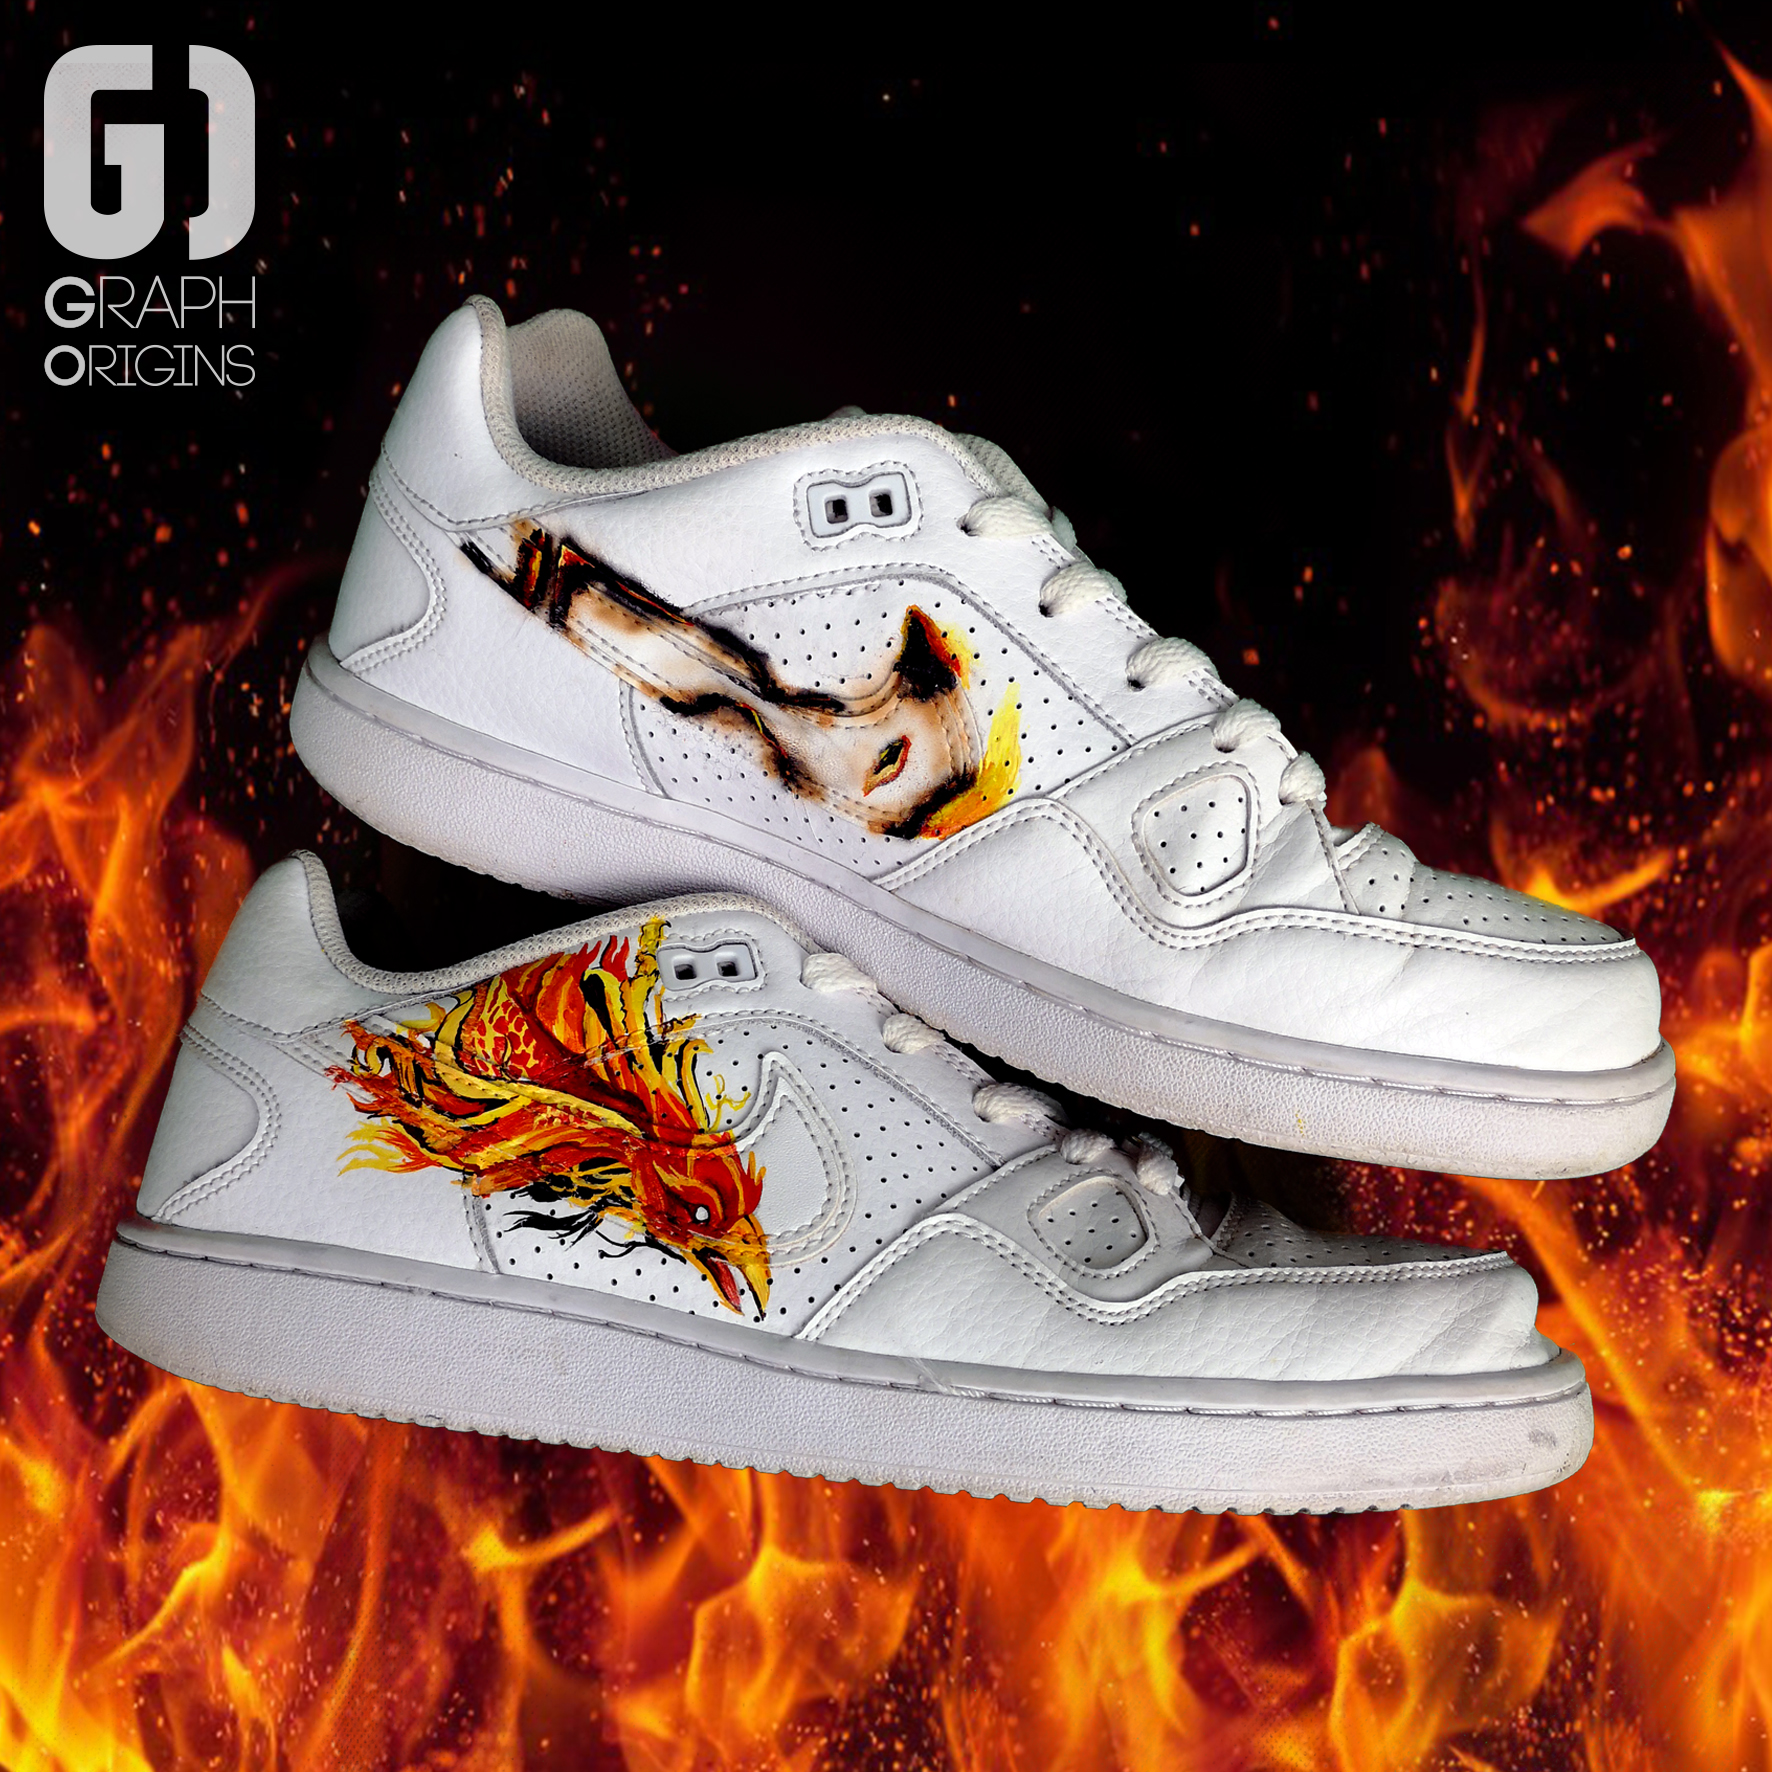 Burned custom Phoenix Nike 3